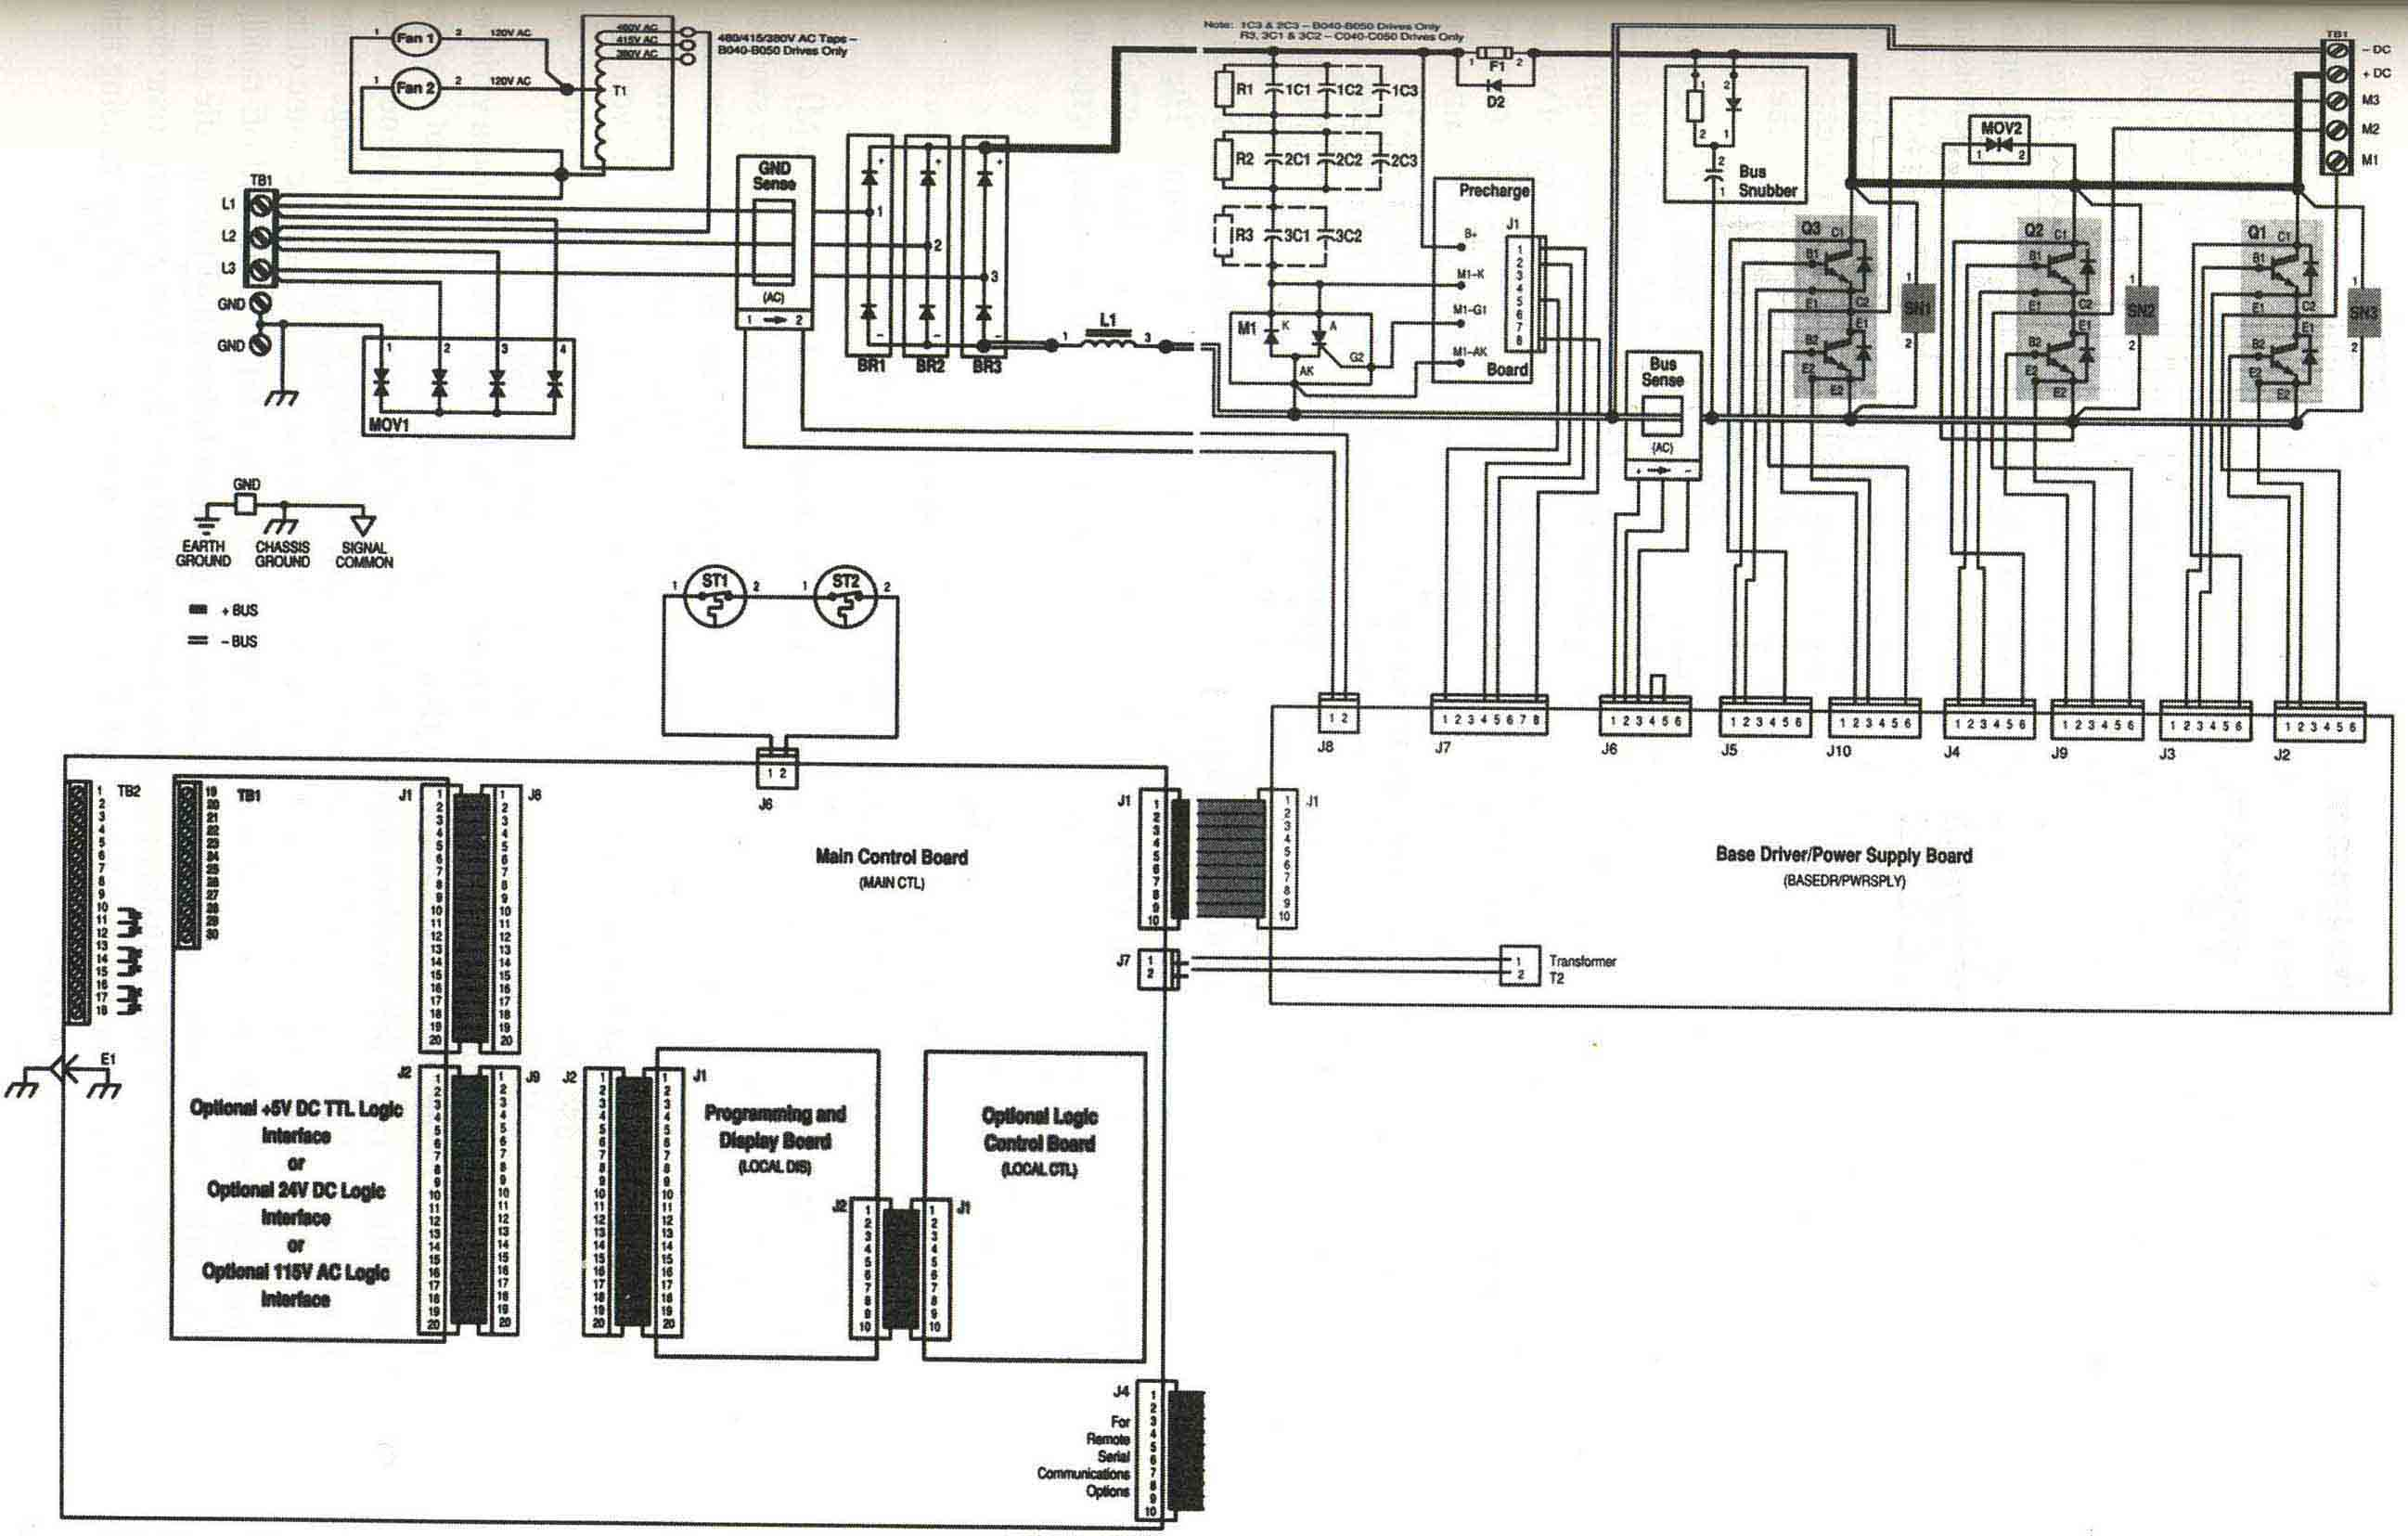 port a cool evaporator3600 wiring diagram wiring library rh 12 codingcommunity de 3-Way Switch Wiring Diagram Residential Electrical Wiring Diagrams